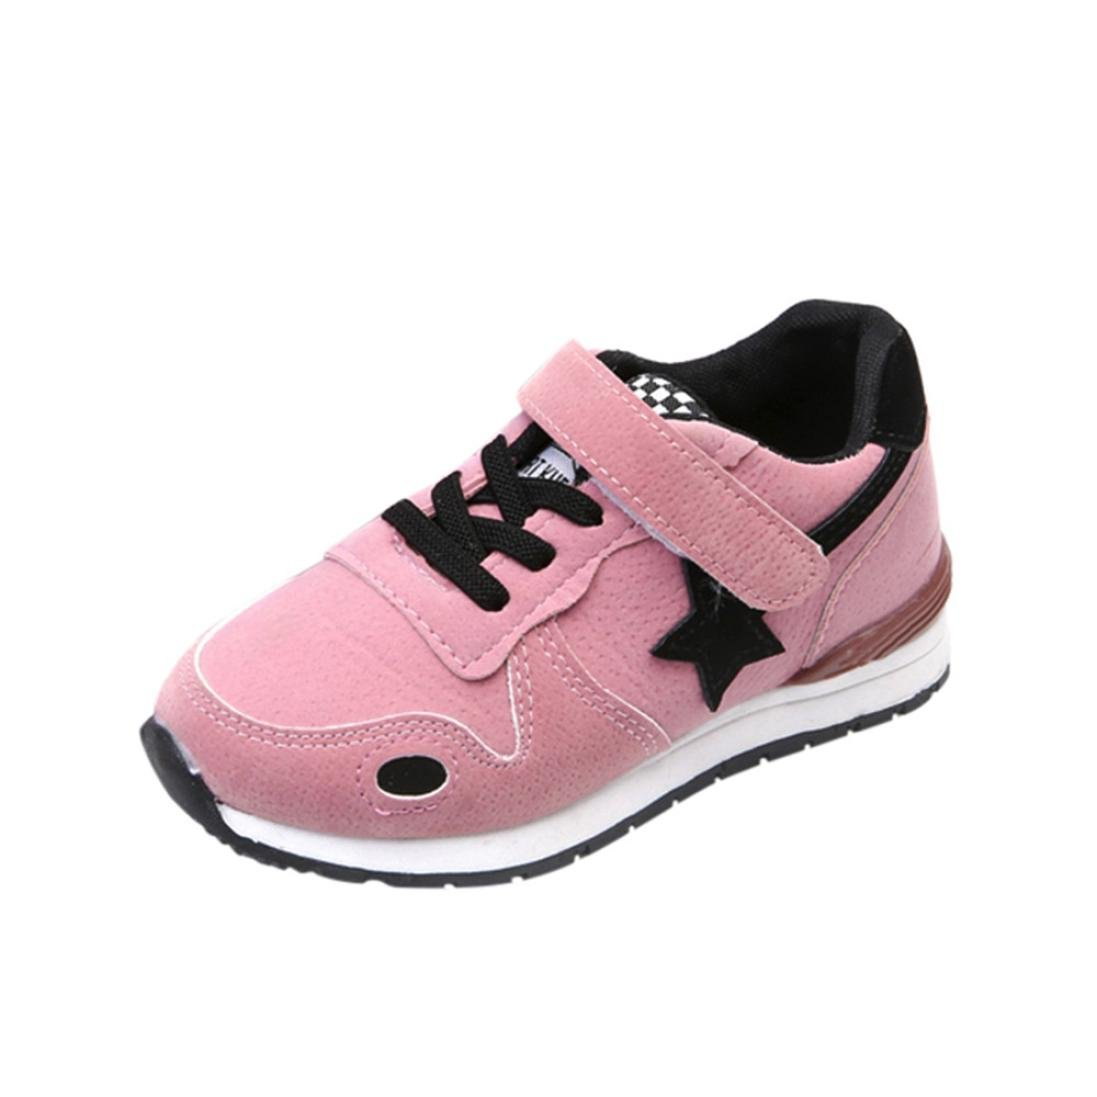 FEITONG Toddler Kids Sport Running Shoes Boys Girls Star Mesh Shoes Sneakers (US:10.5, Foot Length:7.1'', Pink)